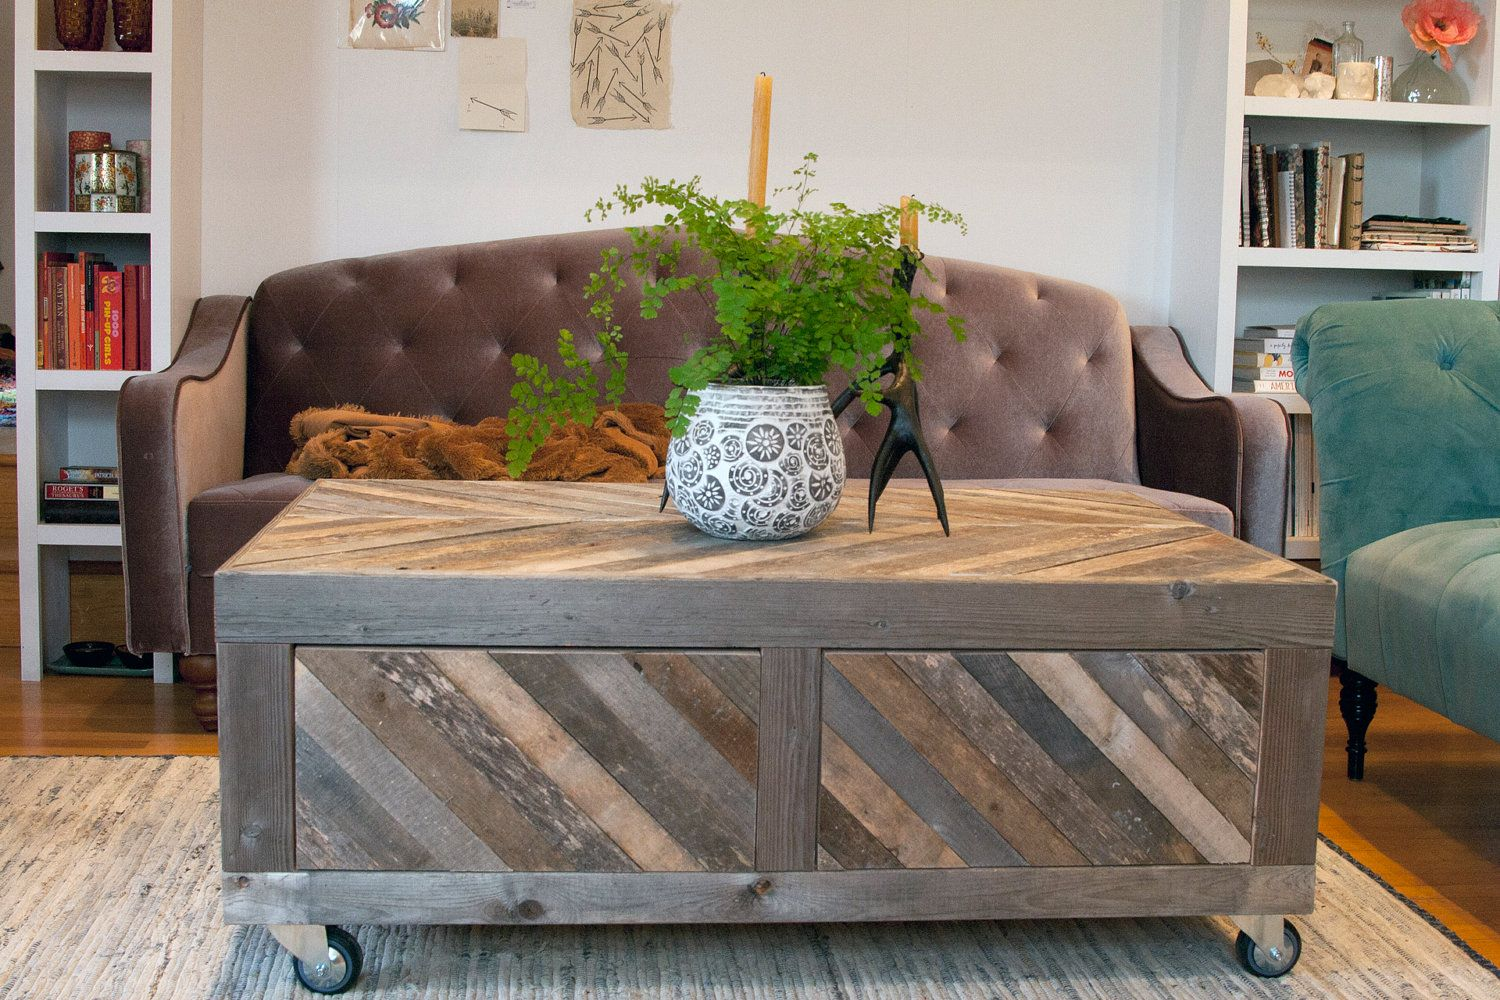 Reclaimed chevron pallet and barn wood coffee by newantiquity reclaimed chevron pallet and barn wood coffee by newantiquity 89900 geotapseo Image collections